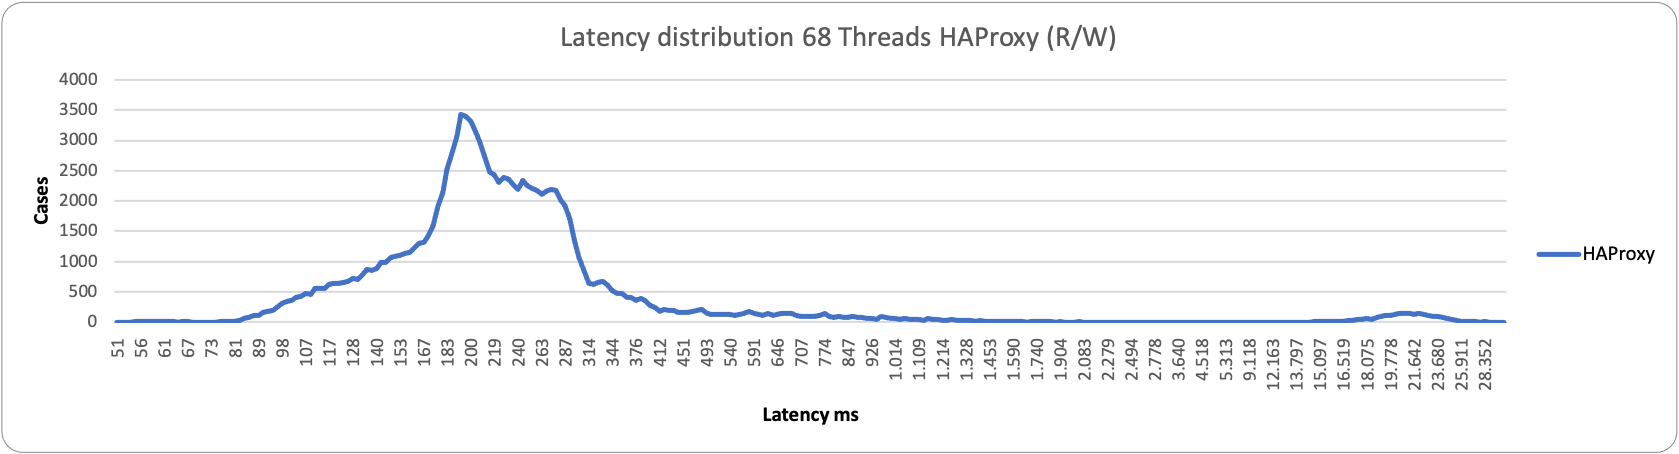 latency68 1node HAproxy rw